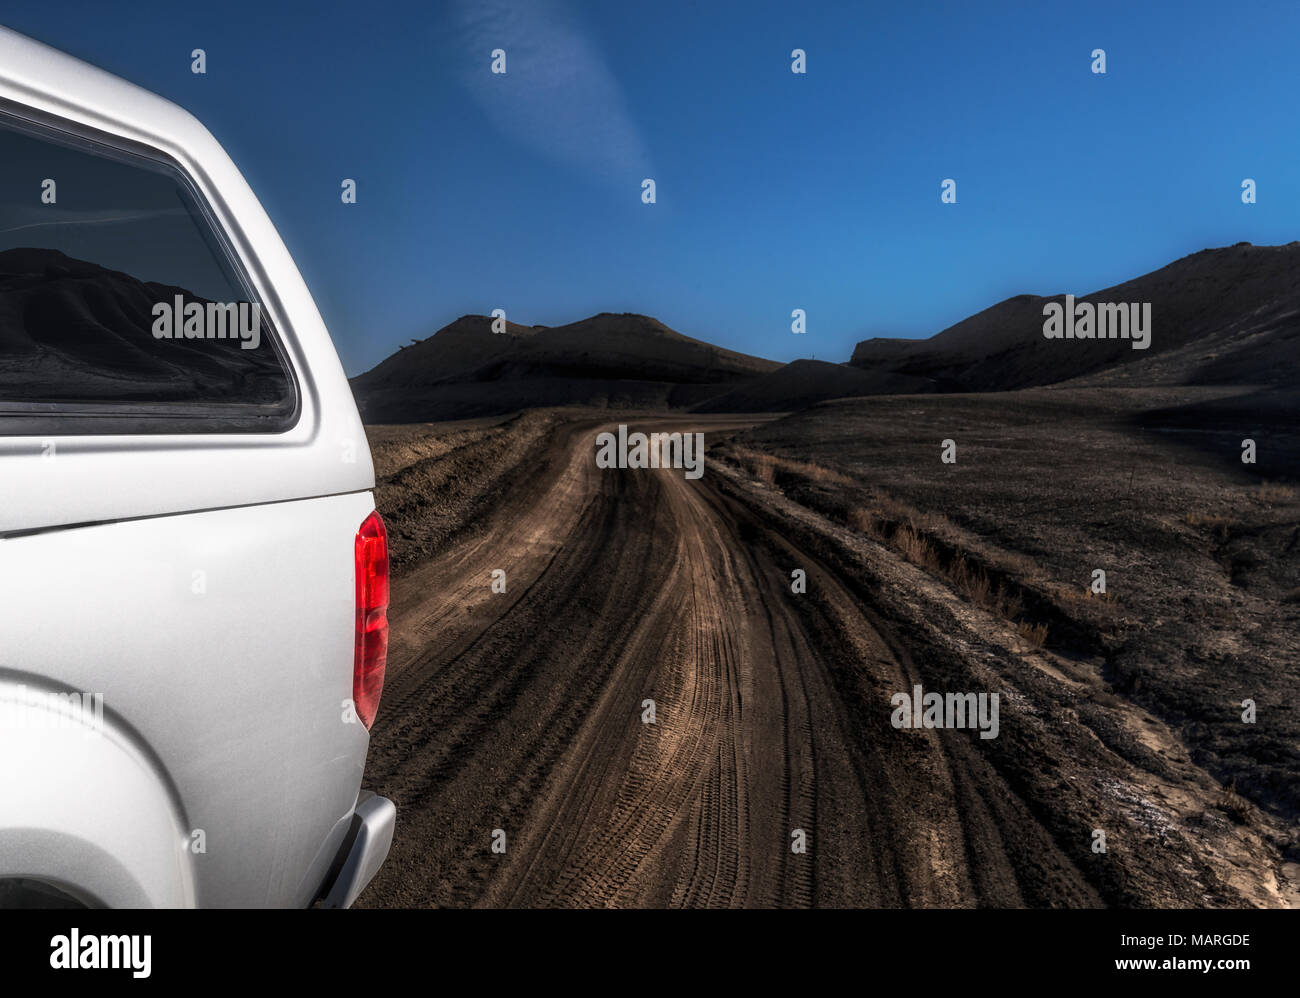 Off roading:Truck in the muck.Modern 4x4 with camper in the mud hills of S.E. Utah - Stock Image